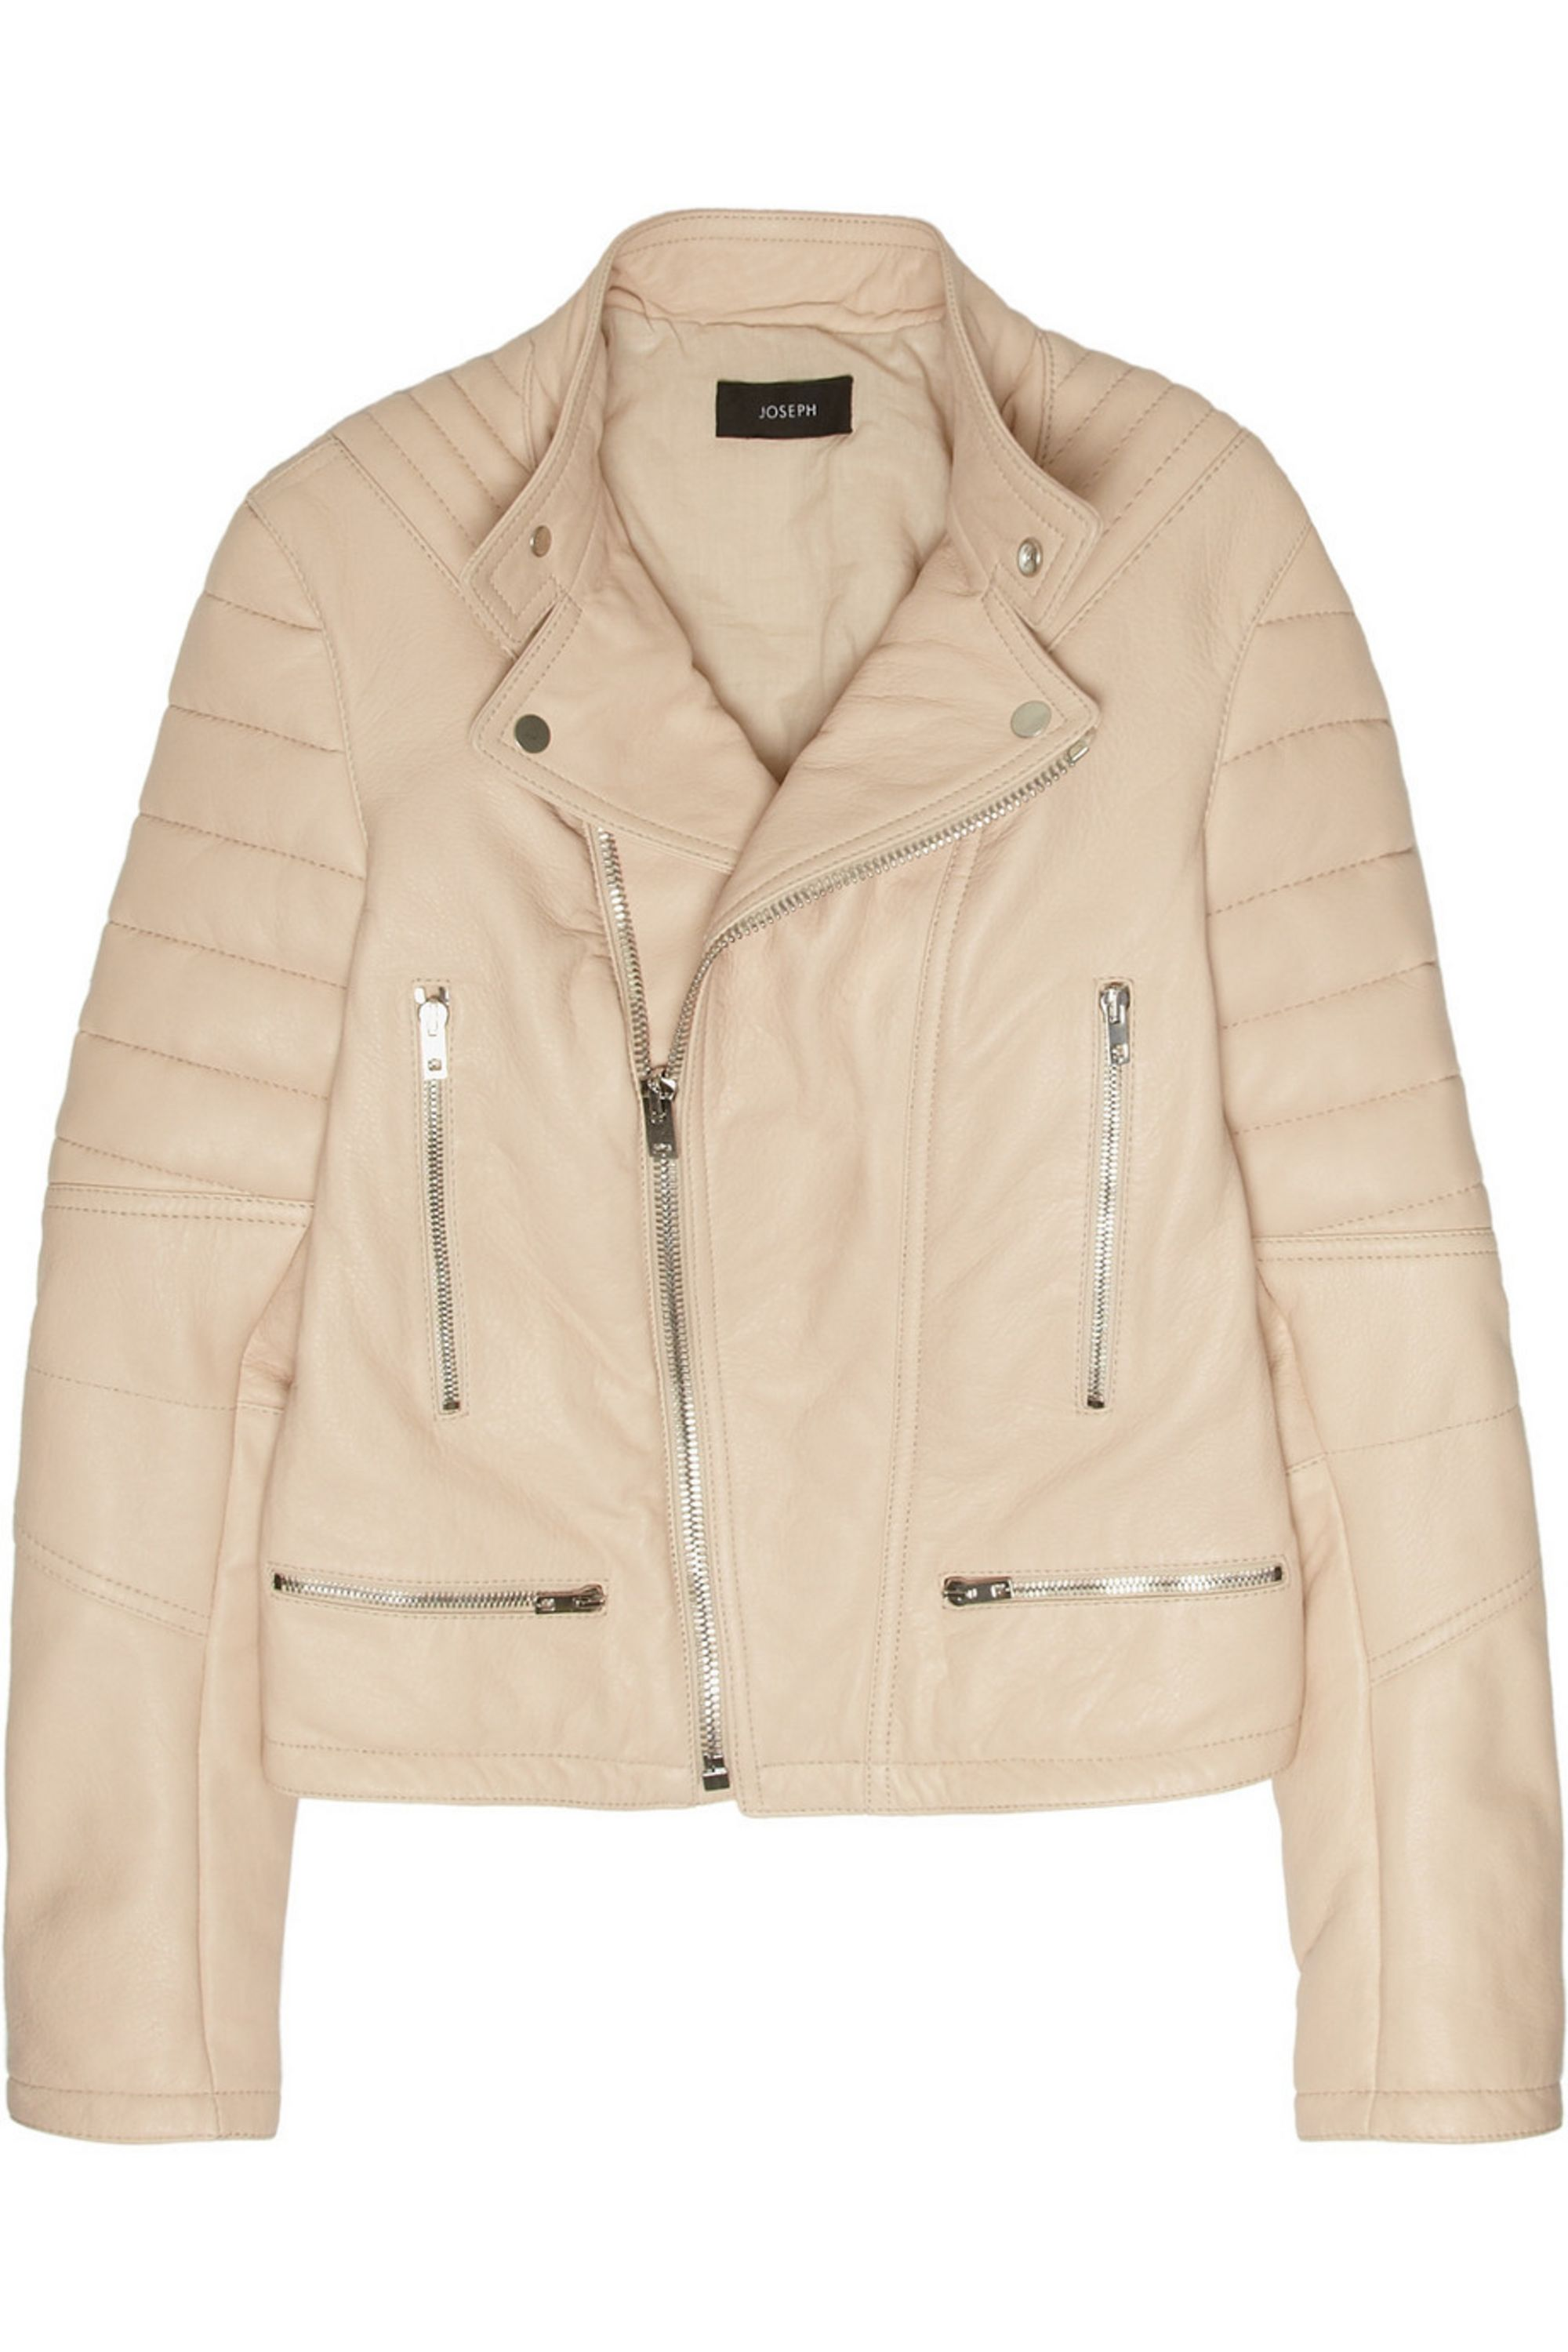 Joseph Quilted leather biker jacket